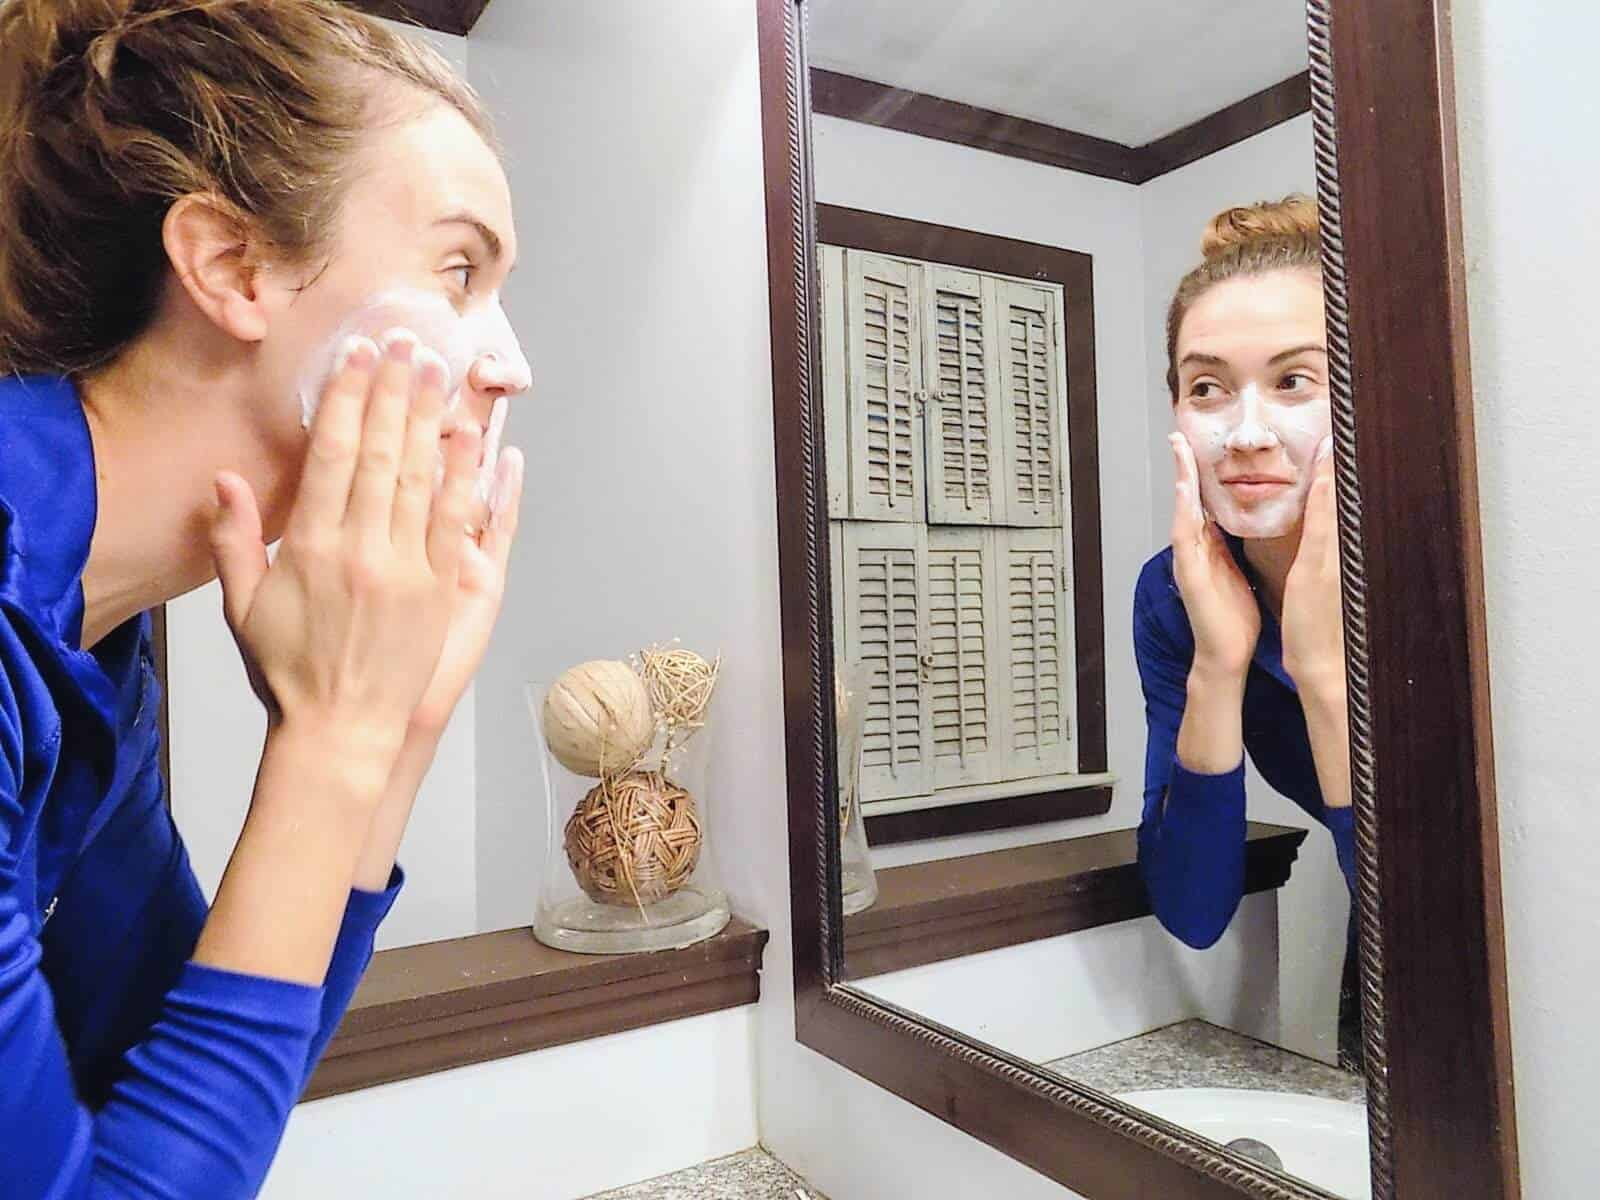 Woman washes face in mirror.